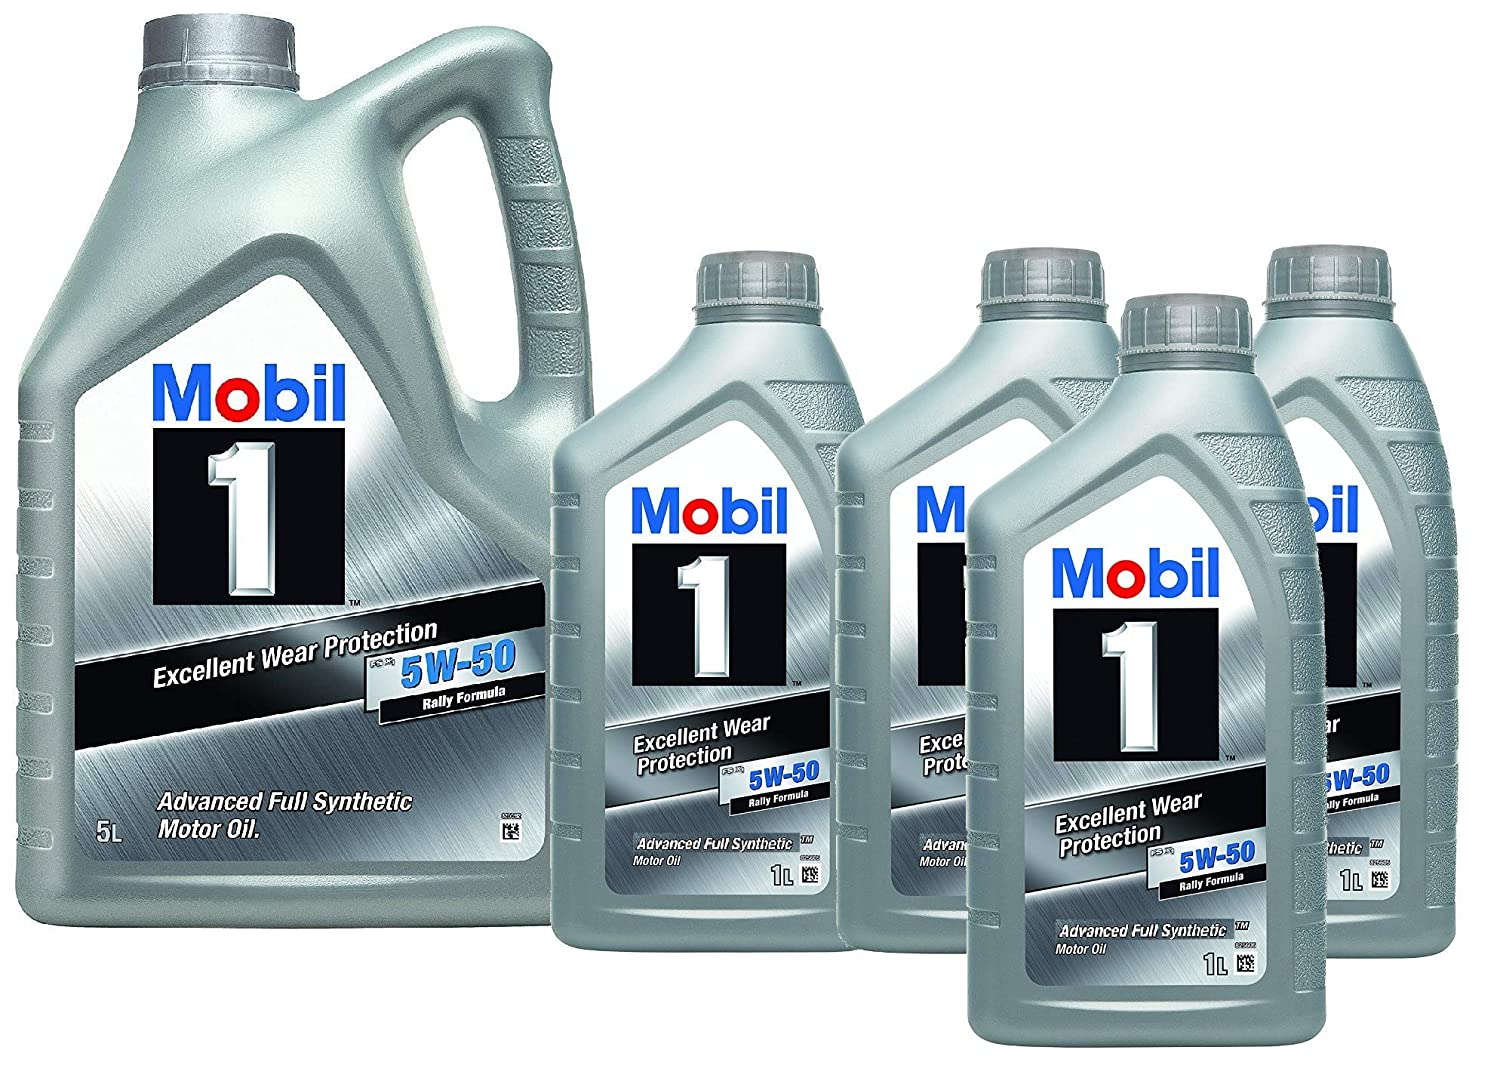 Mobil 1 Aceite Motor FS x1 5W50 - Pack 9 LTS Advanced Full ...